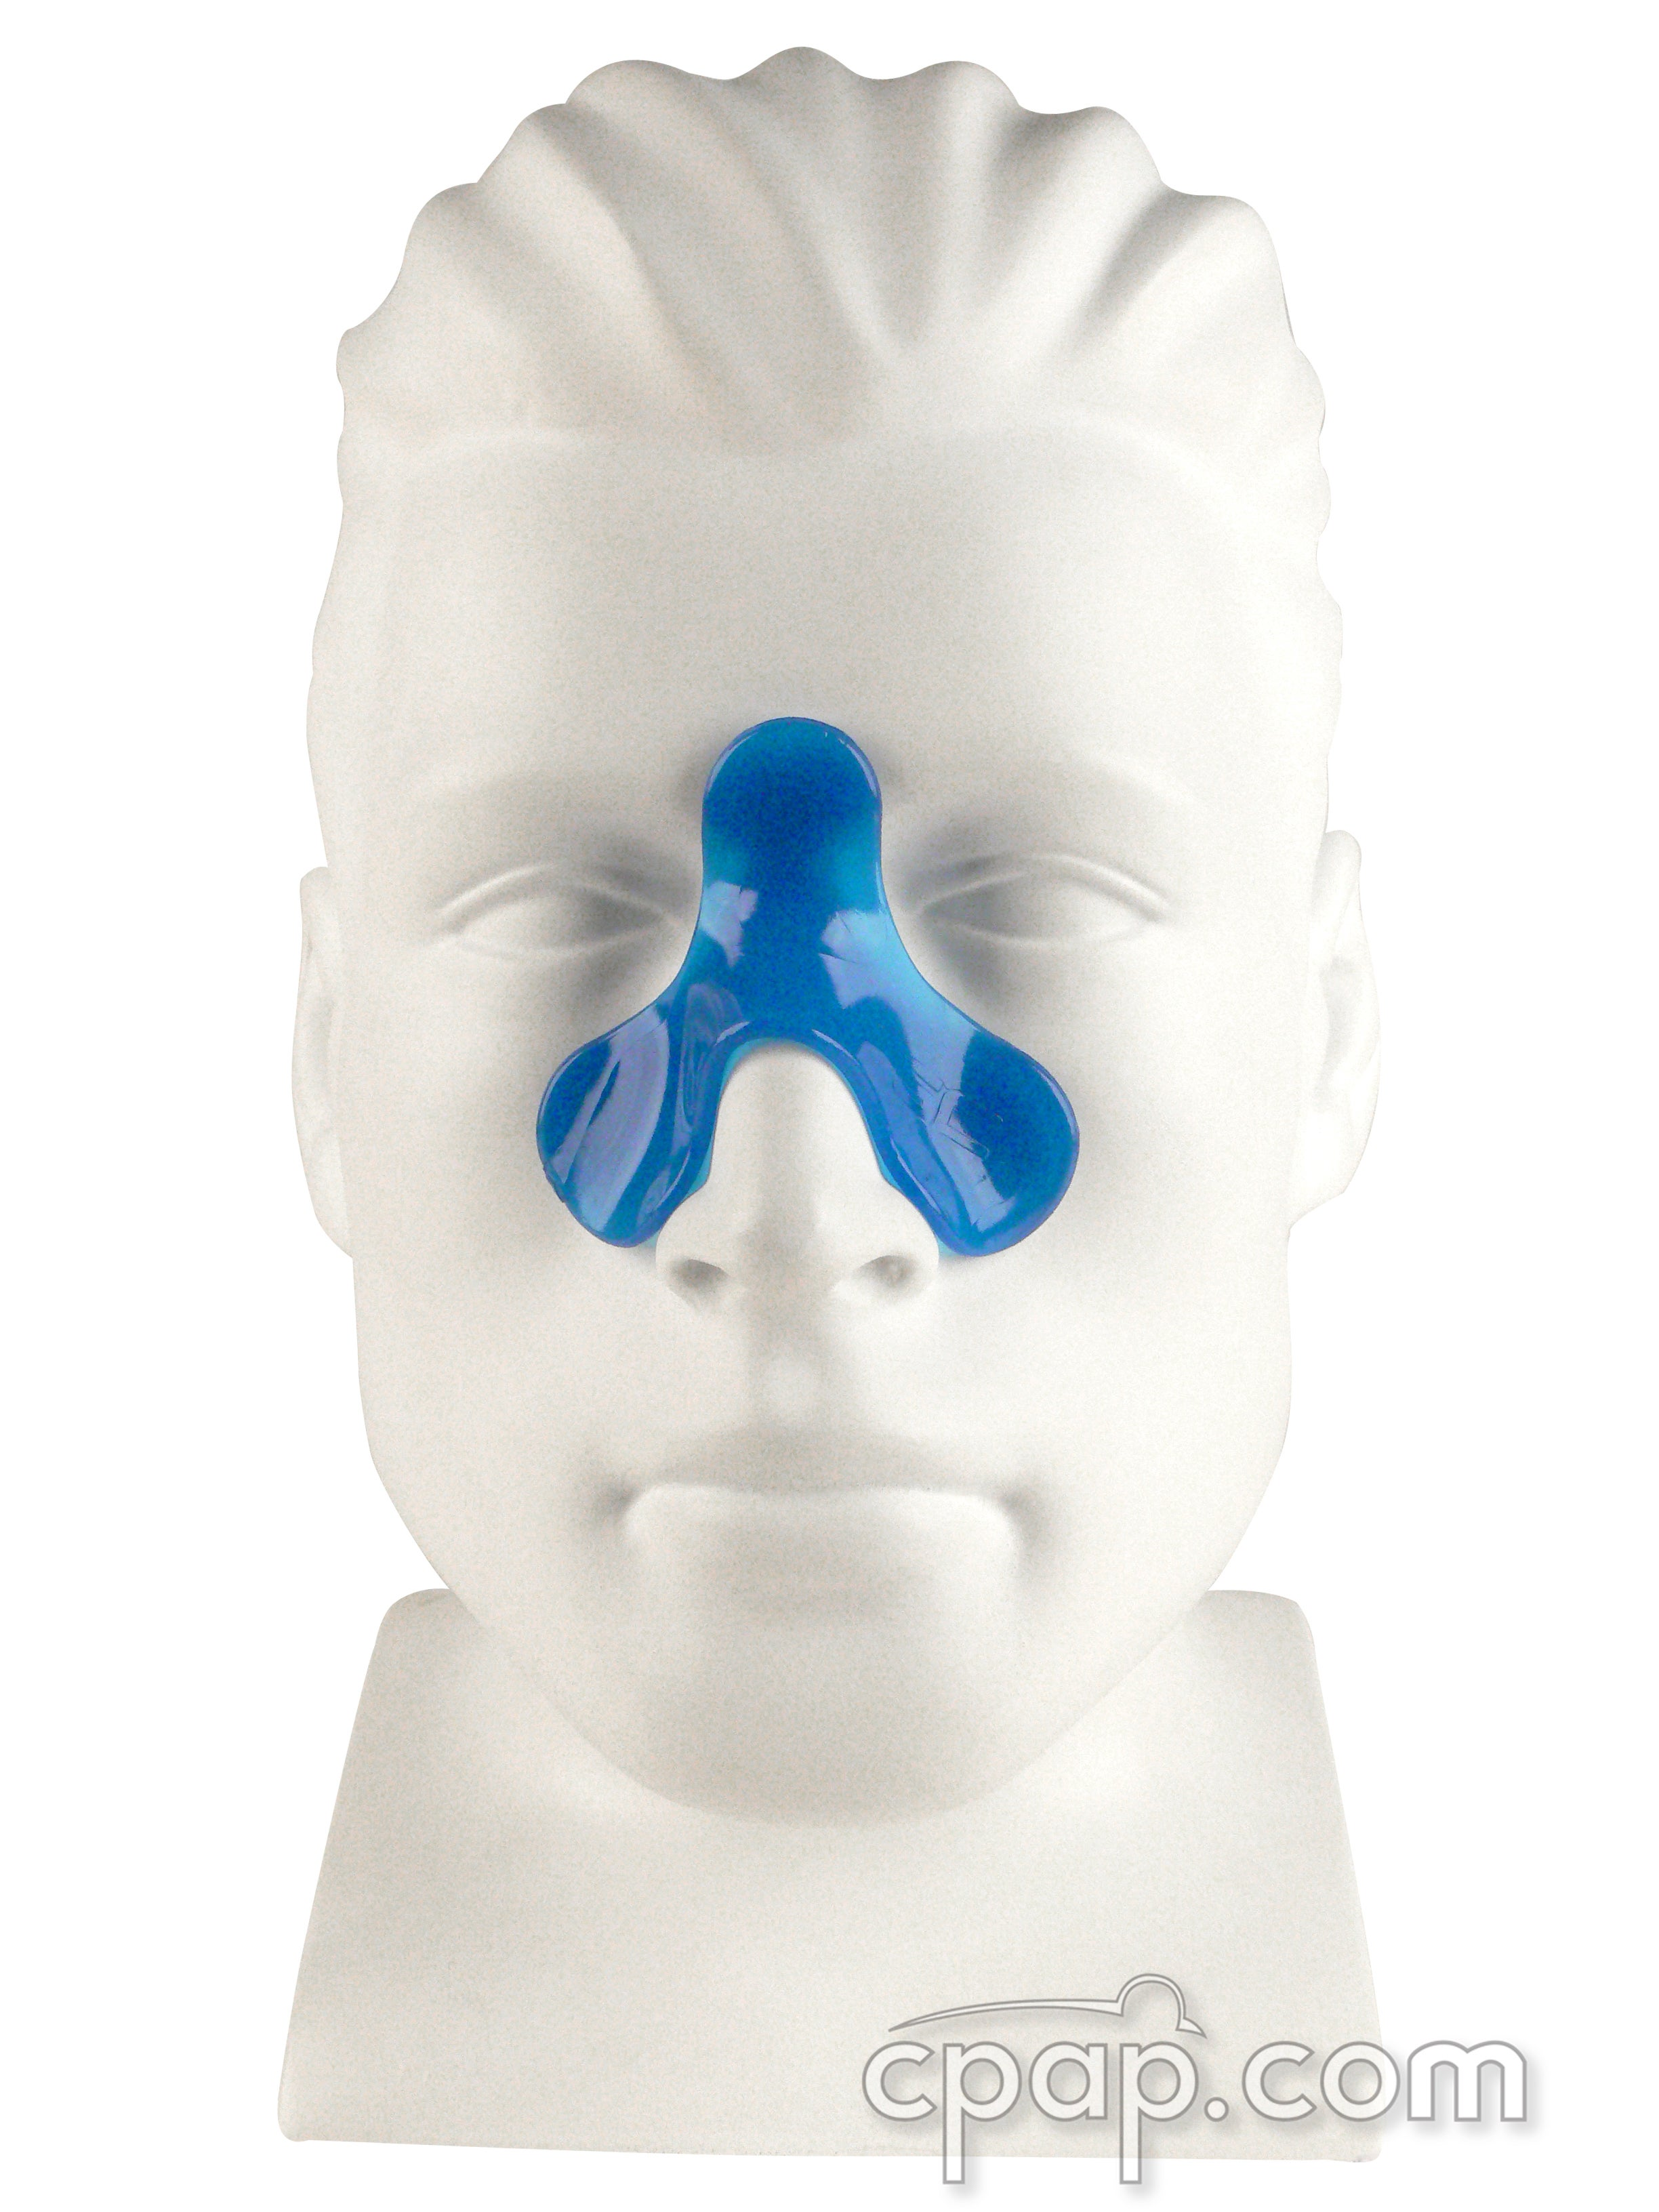 Nasal Soft CPAP Cushion - Shown on Mannequin (not included)